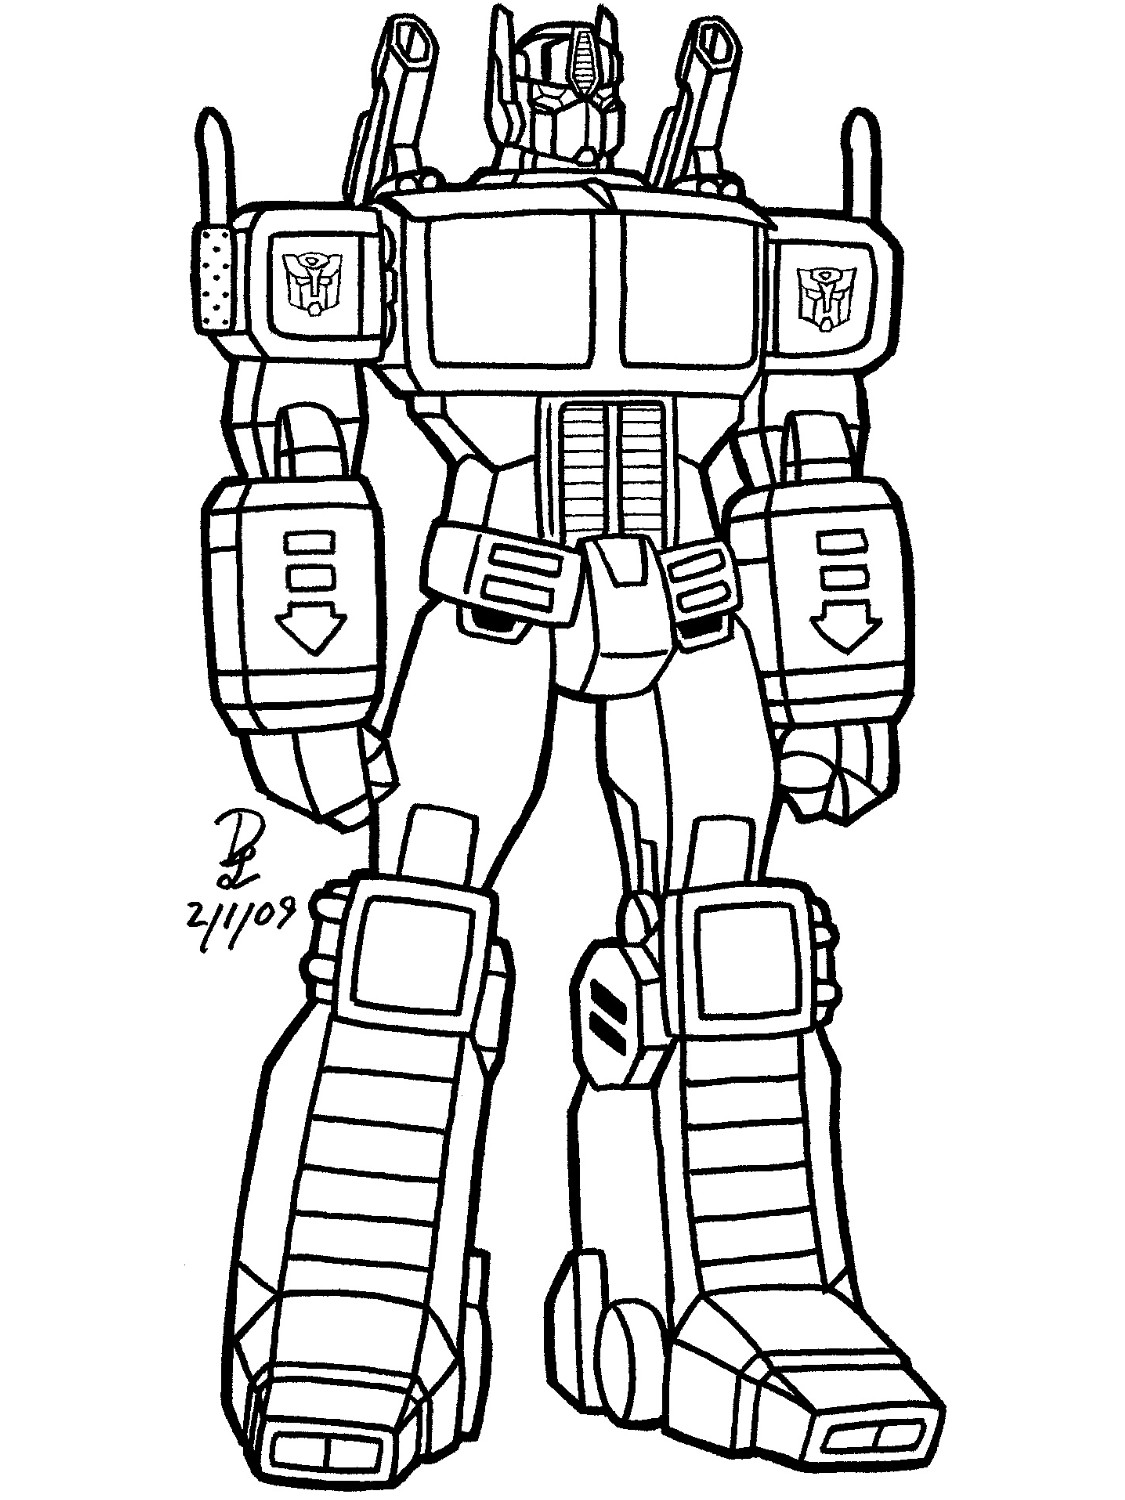 coloring pages transformers dinobot transformers coloring pages gtgt disney coloring pages transformers coloring pages